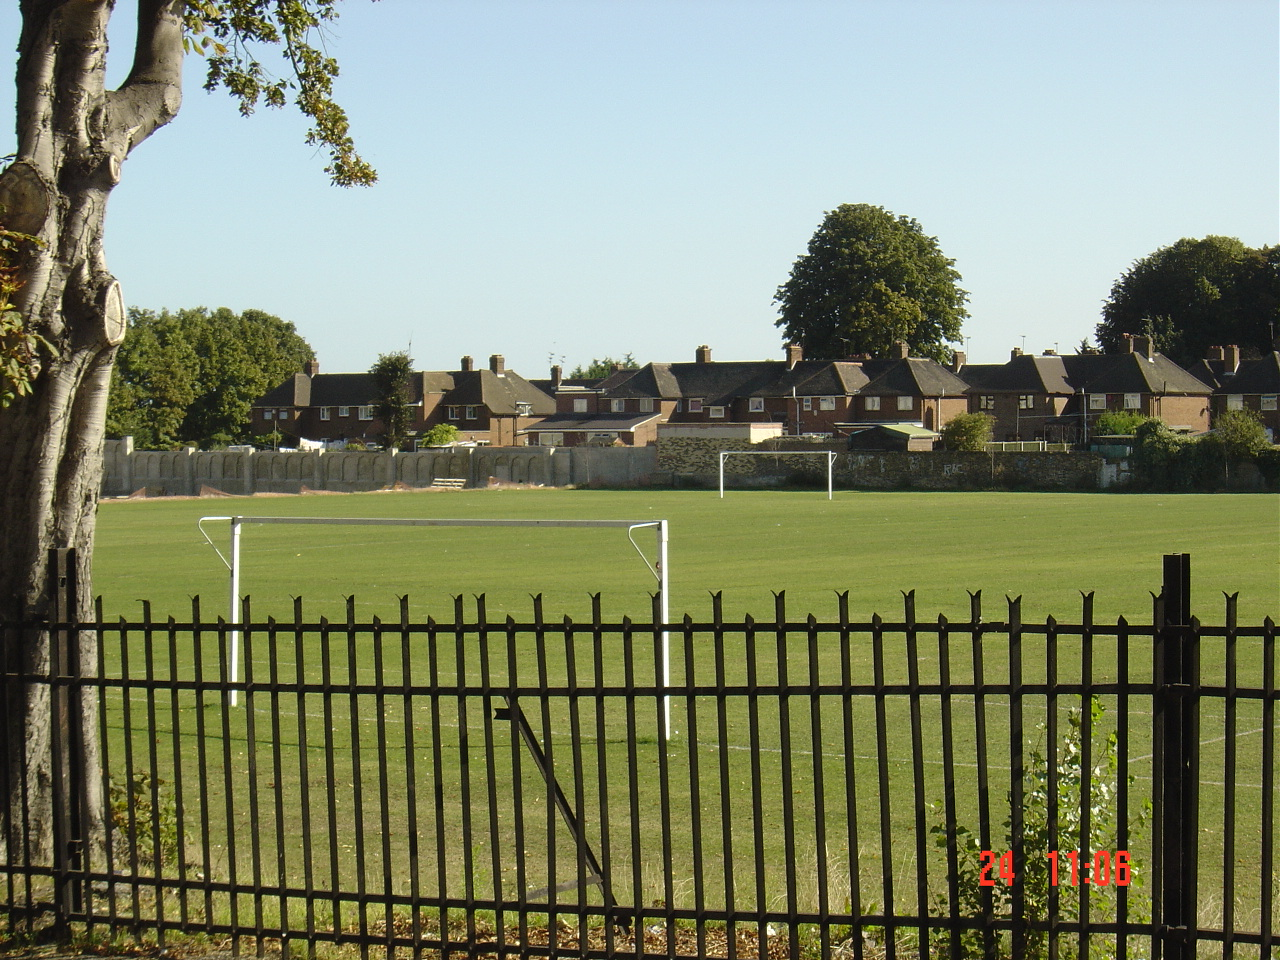 New Pitches at the barracks 2005